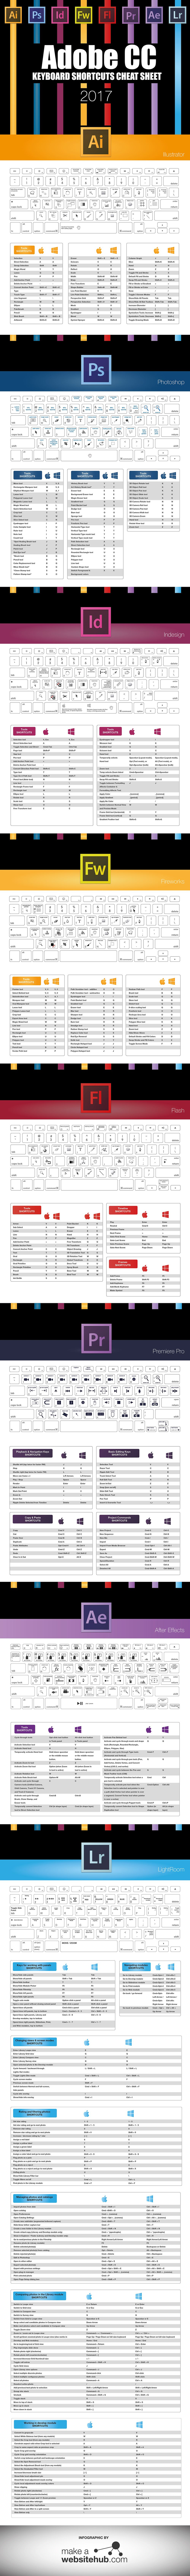 The Ultimate 2019 Adobe Creative Cloud Keyboard Shortcuts Cheat